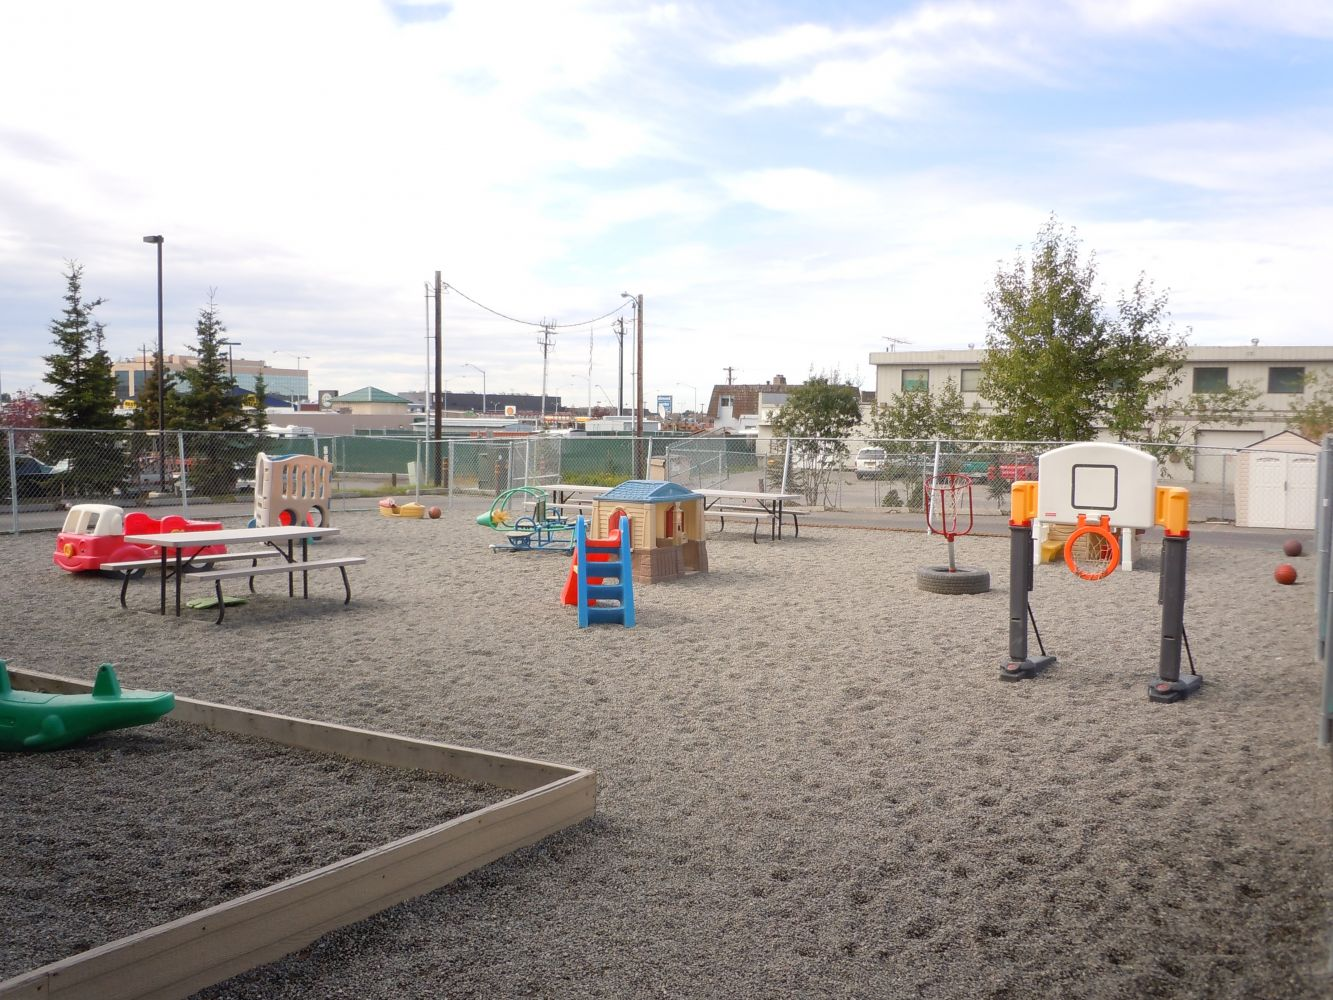 Examples of our day care in Anchorage, AK